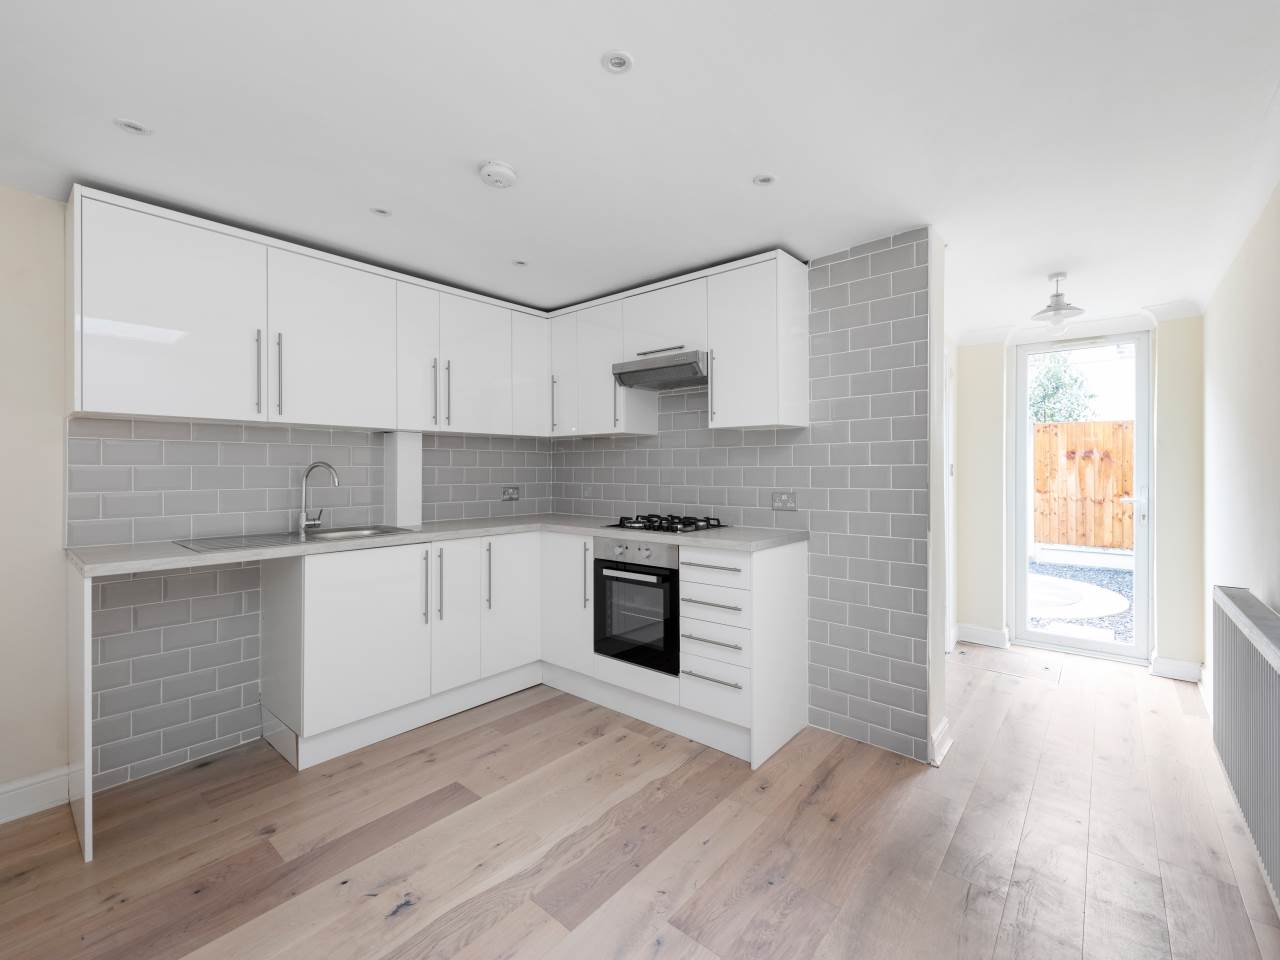 3 bed house for sale in Exning Road , Canning Town  1